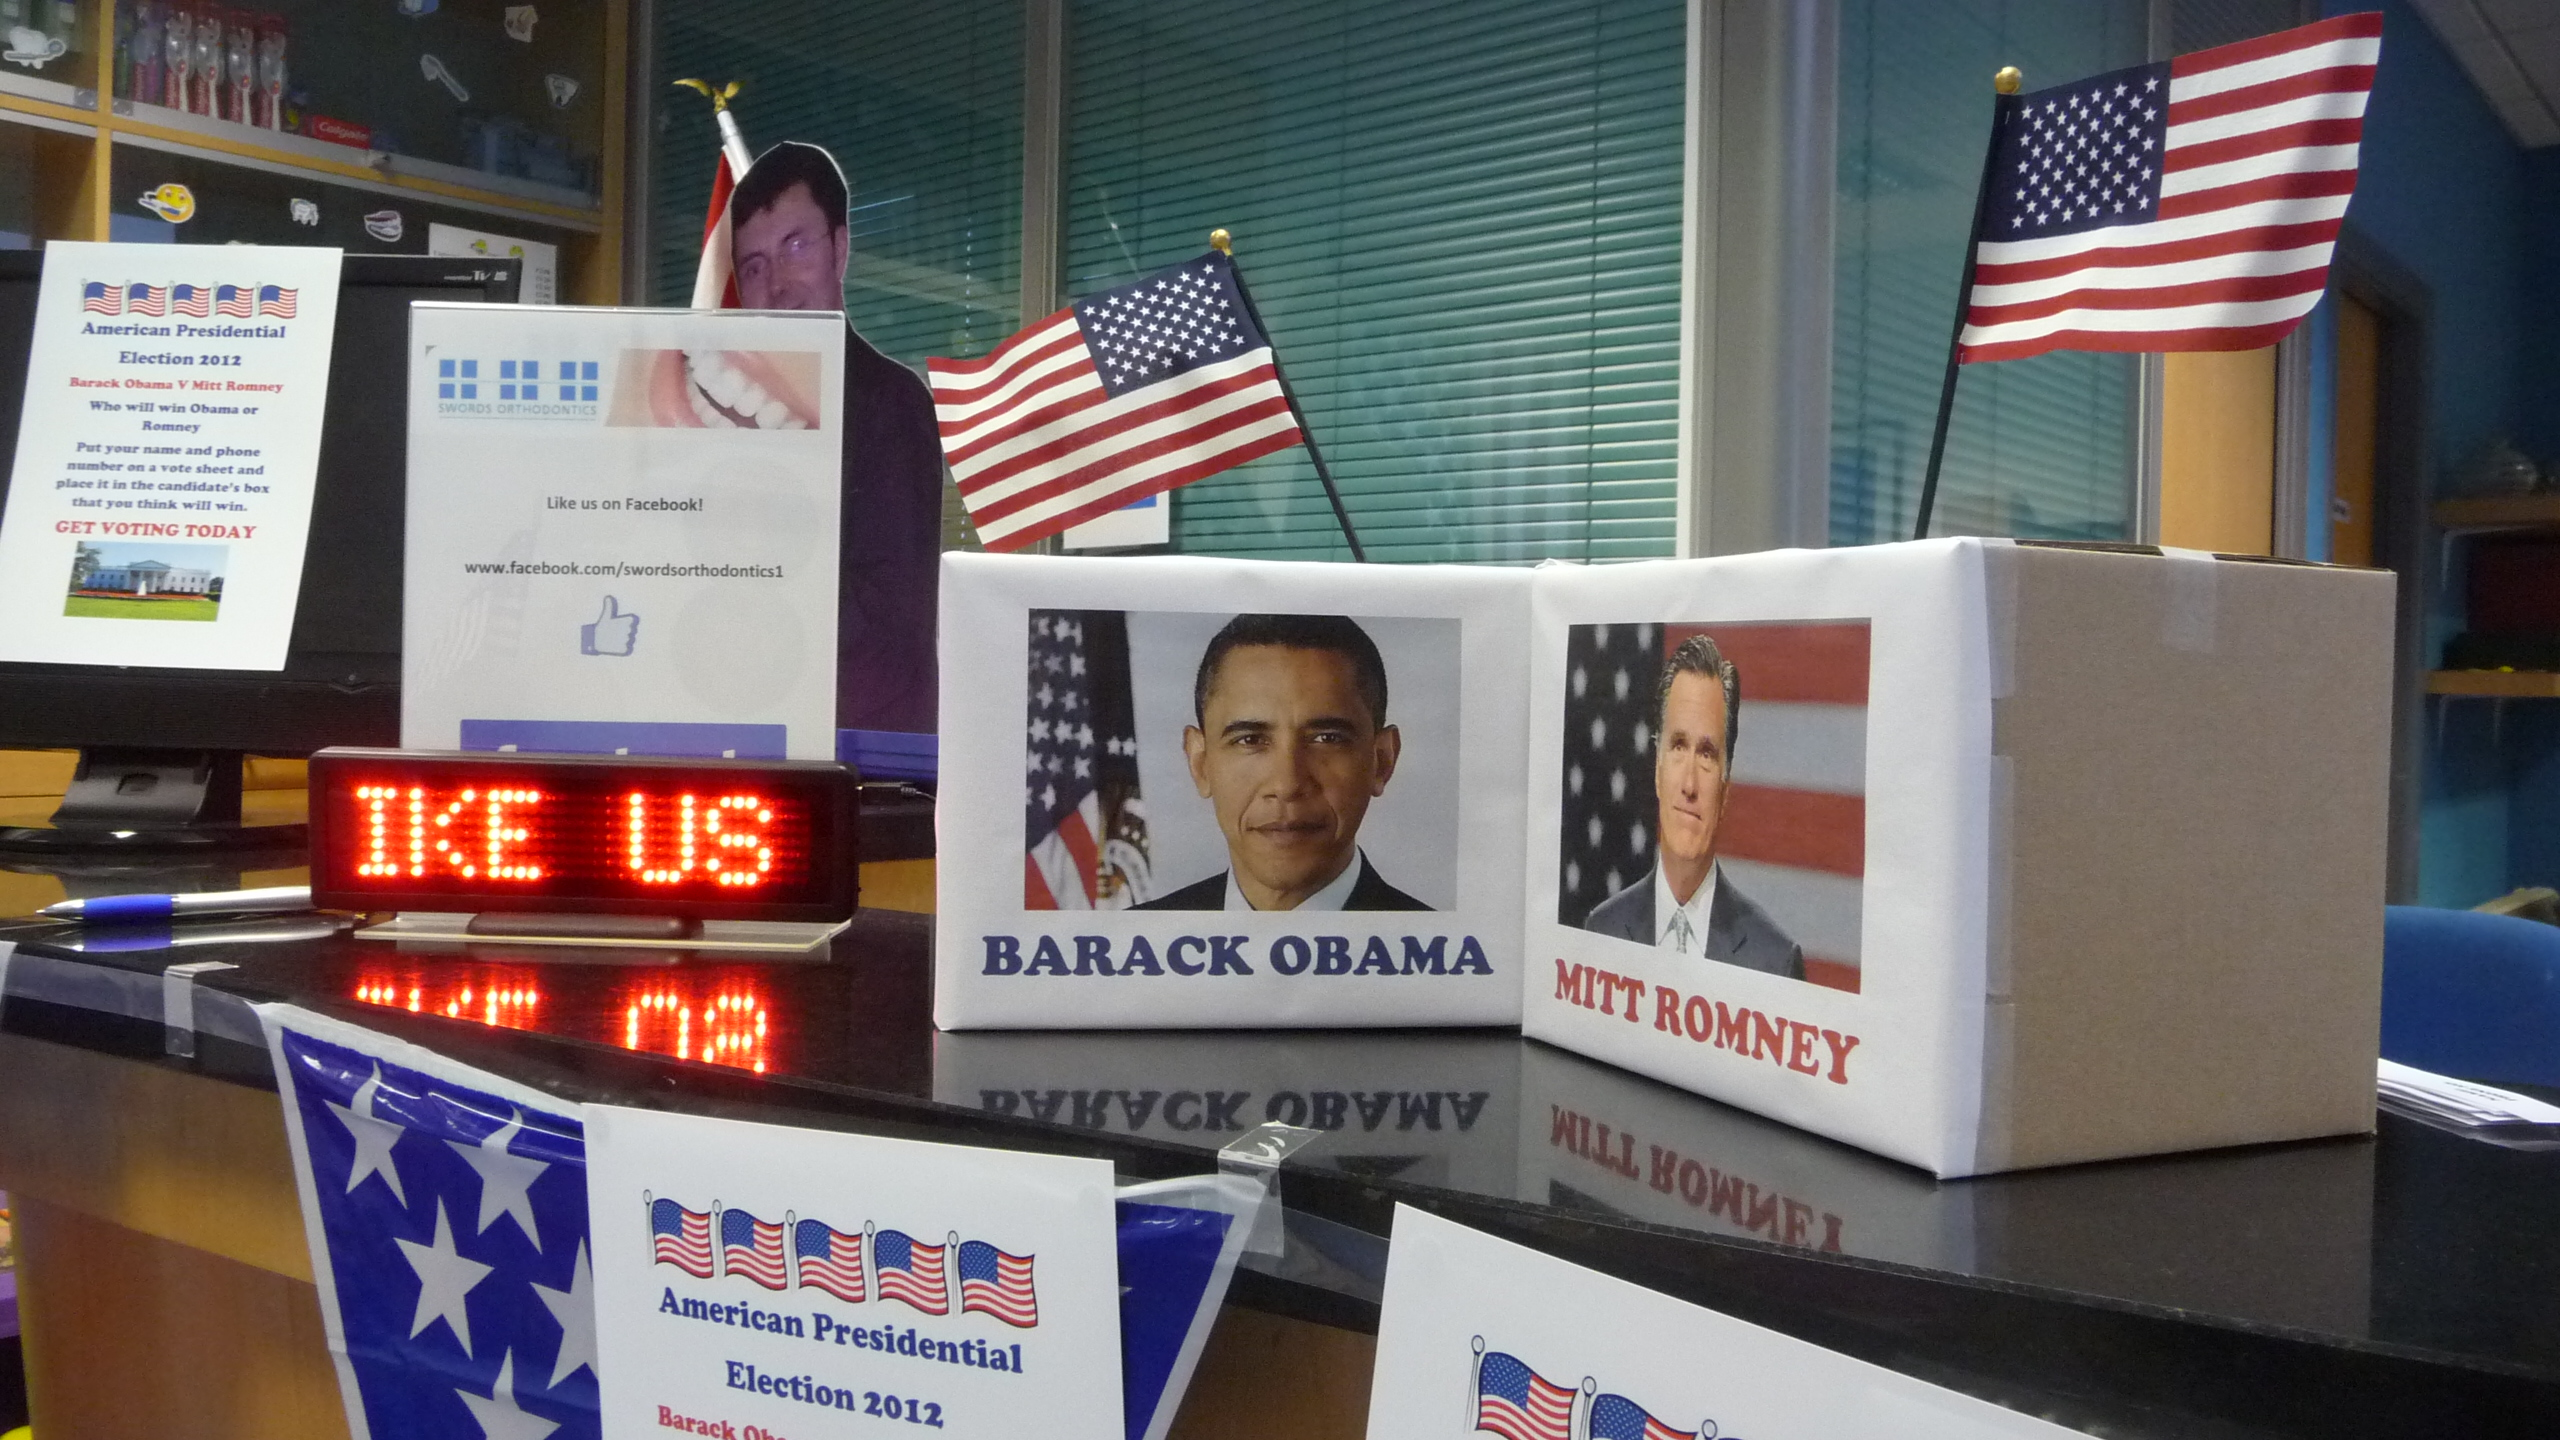 Barack Obama, Mitt Romney and Swords Orthodontics join the race for the White House